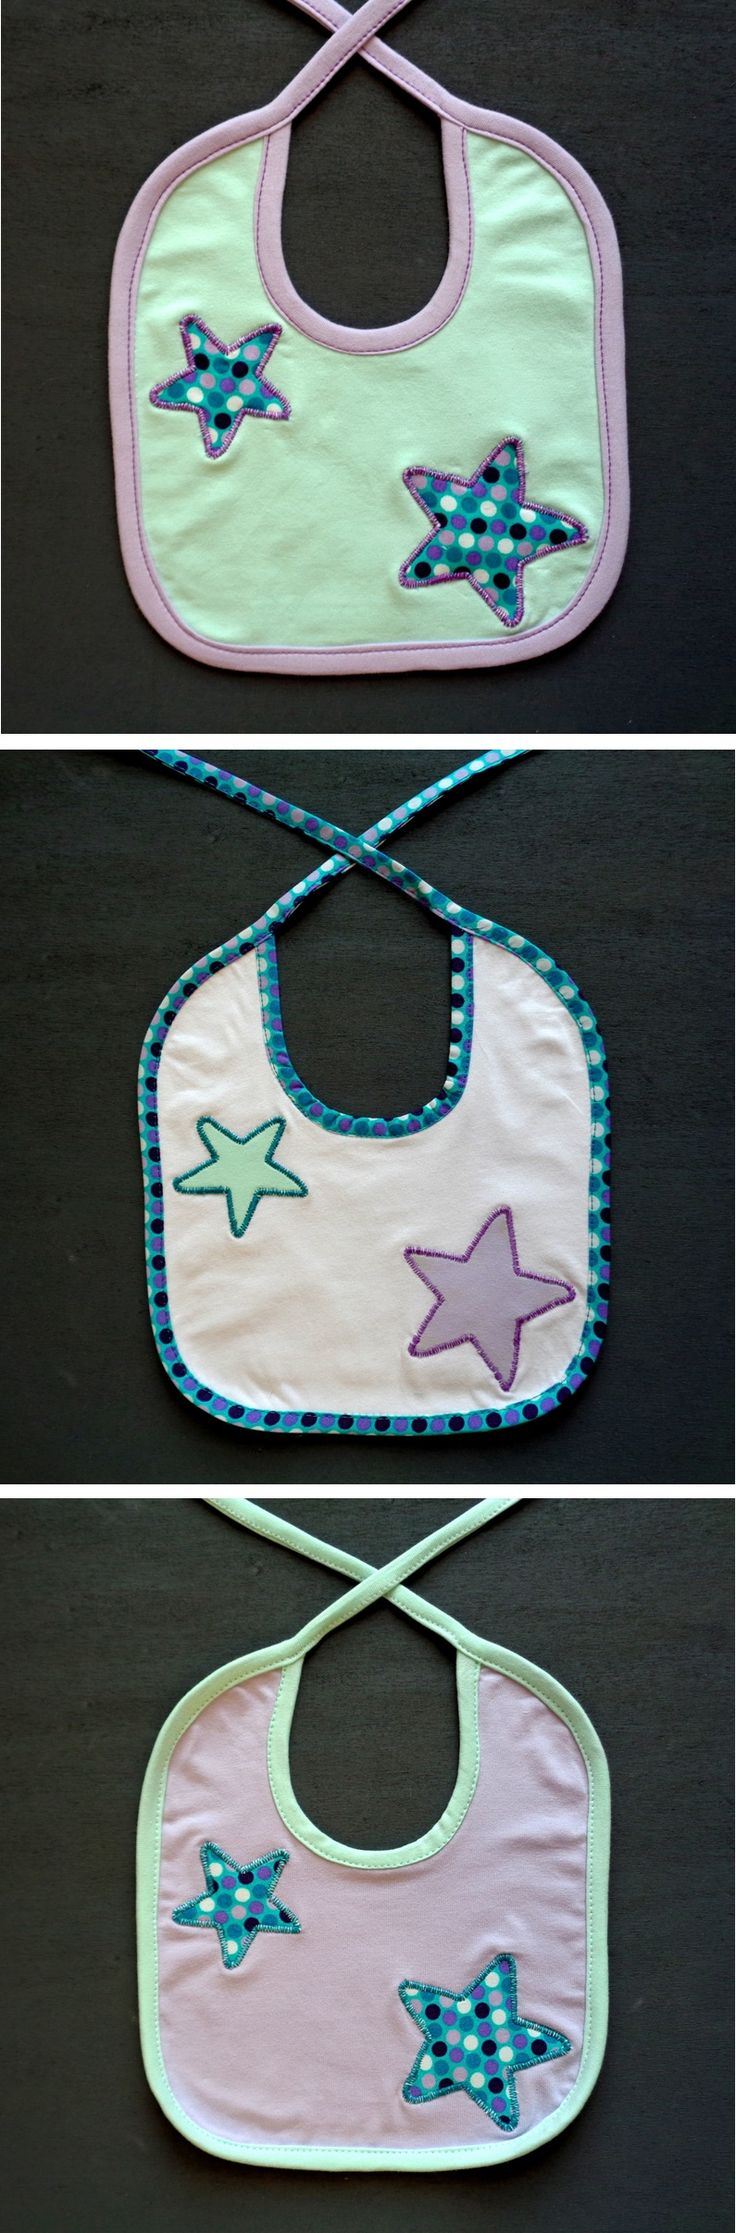 Set of three bibs, star applique, coordinated bibs, mint green lilac, gift for mom, gift for baby, polka dot baby shower, boy girl newborn - handmade by #RobyGiup